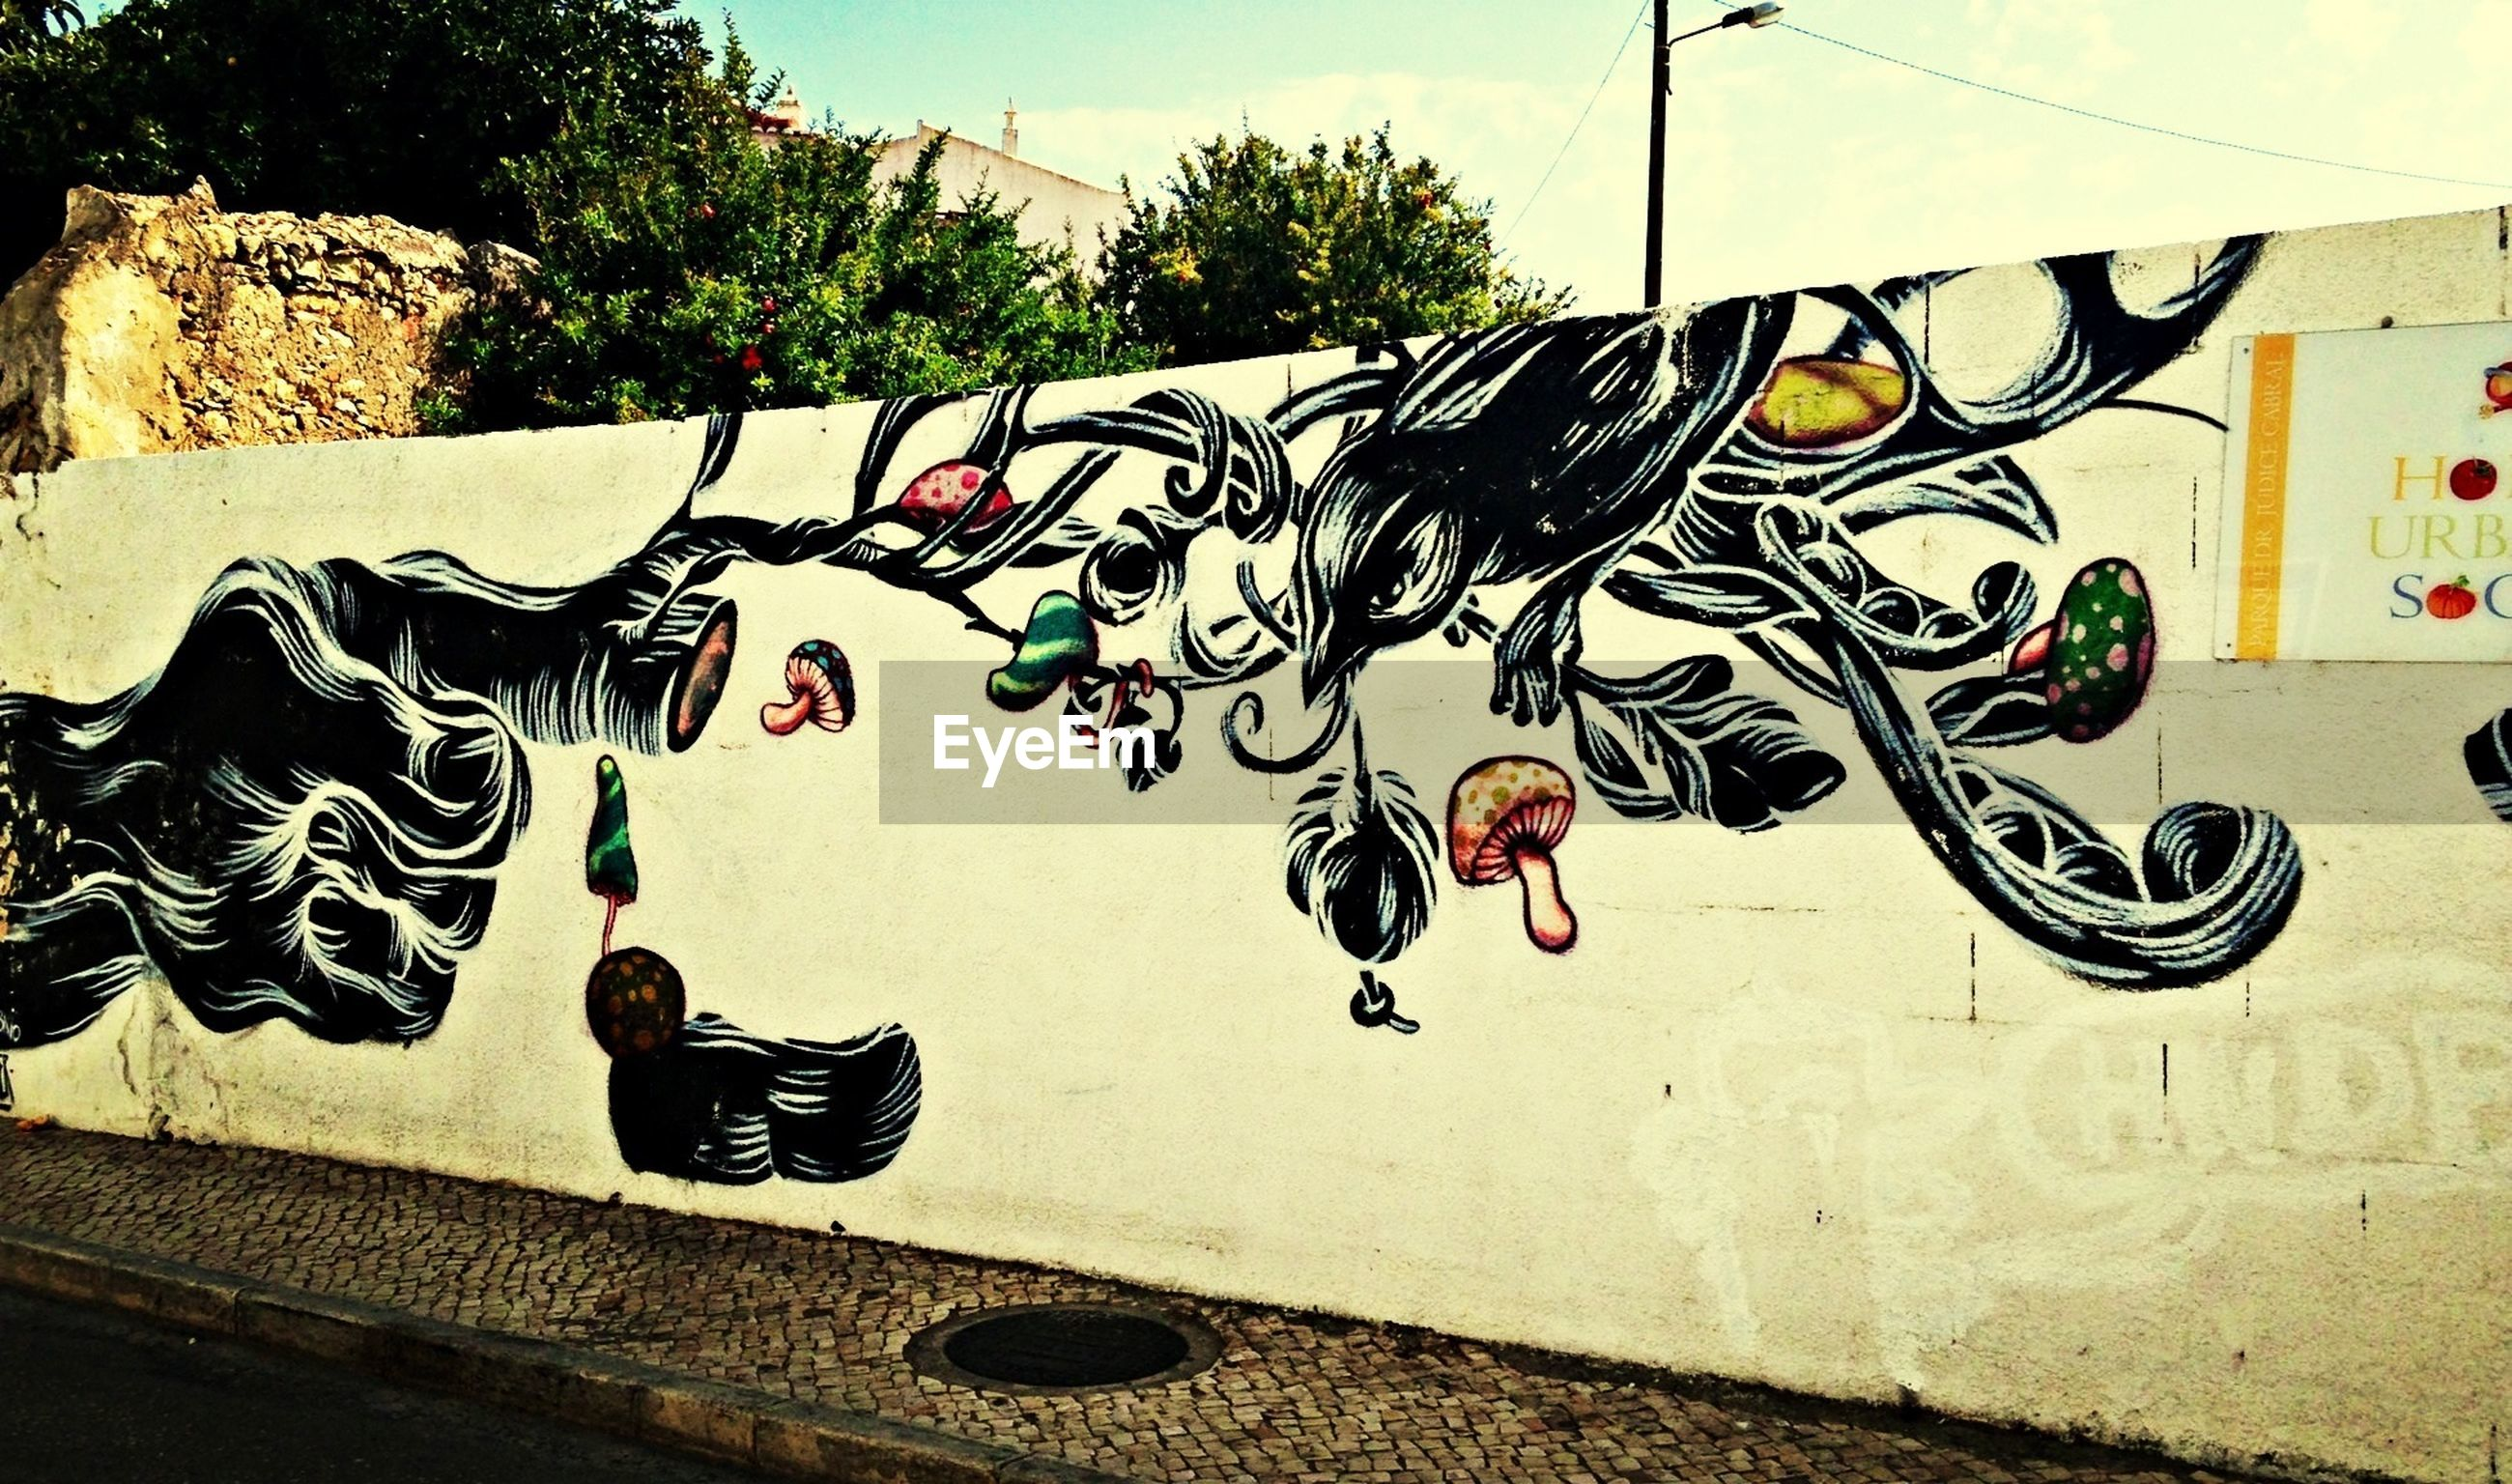 graffiti, art, creativity, art and craft, wall - building feature, built structure, architecture, building exterior, wall, street art, shadow, text, multi colored, day, no people, sunlight, outdoors, human representation, street, house